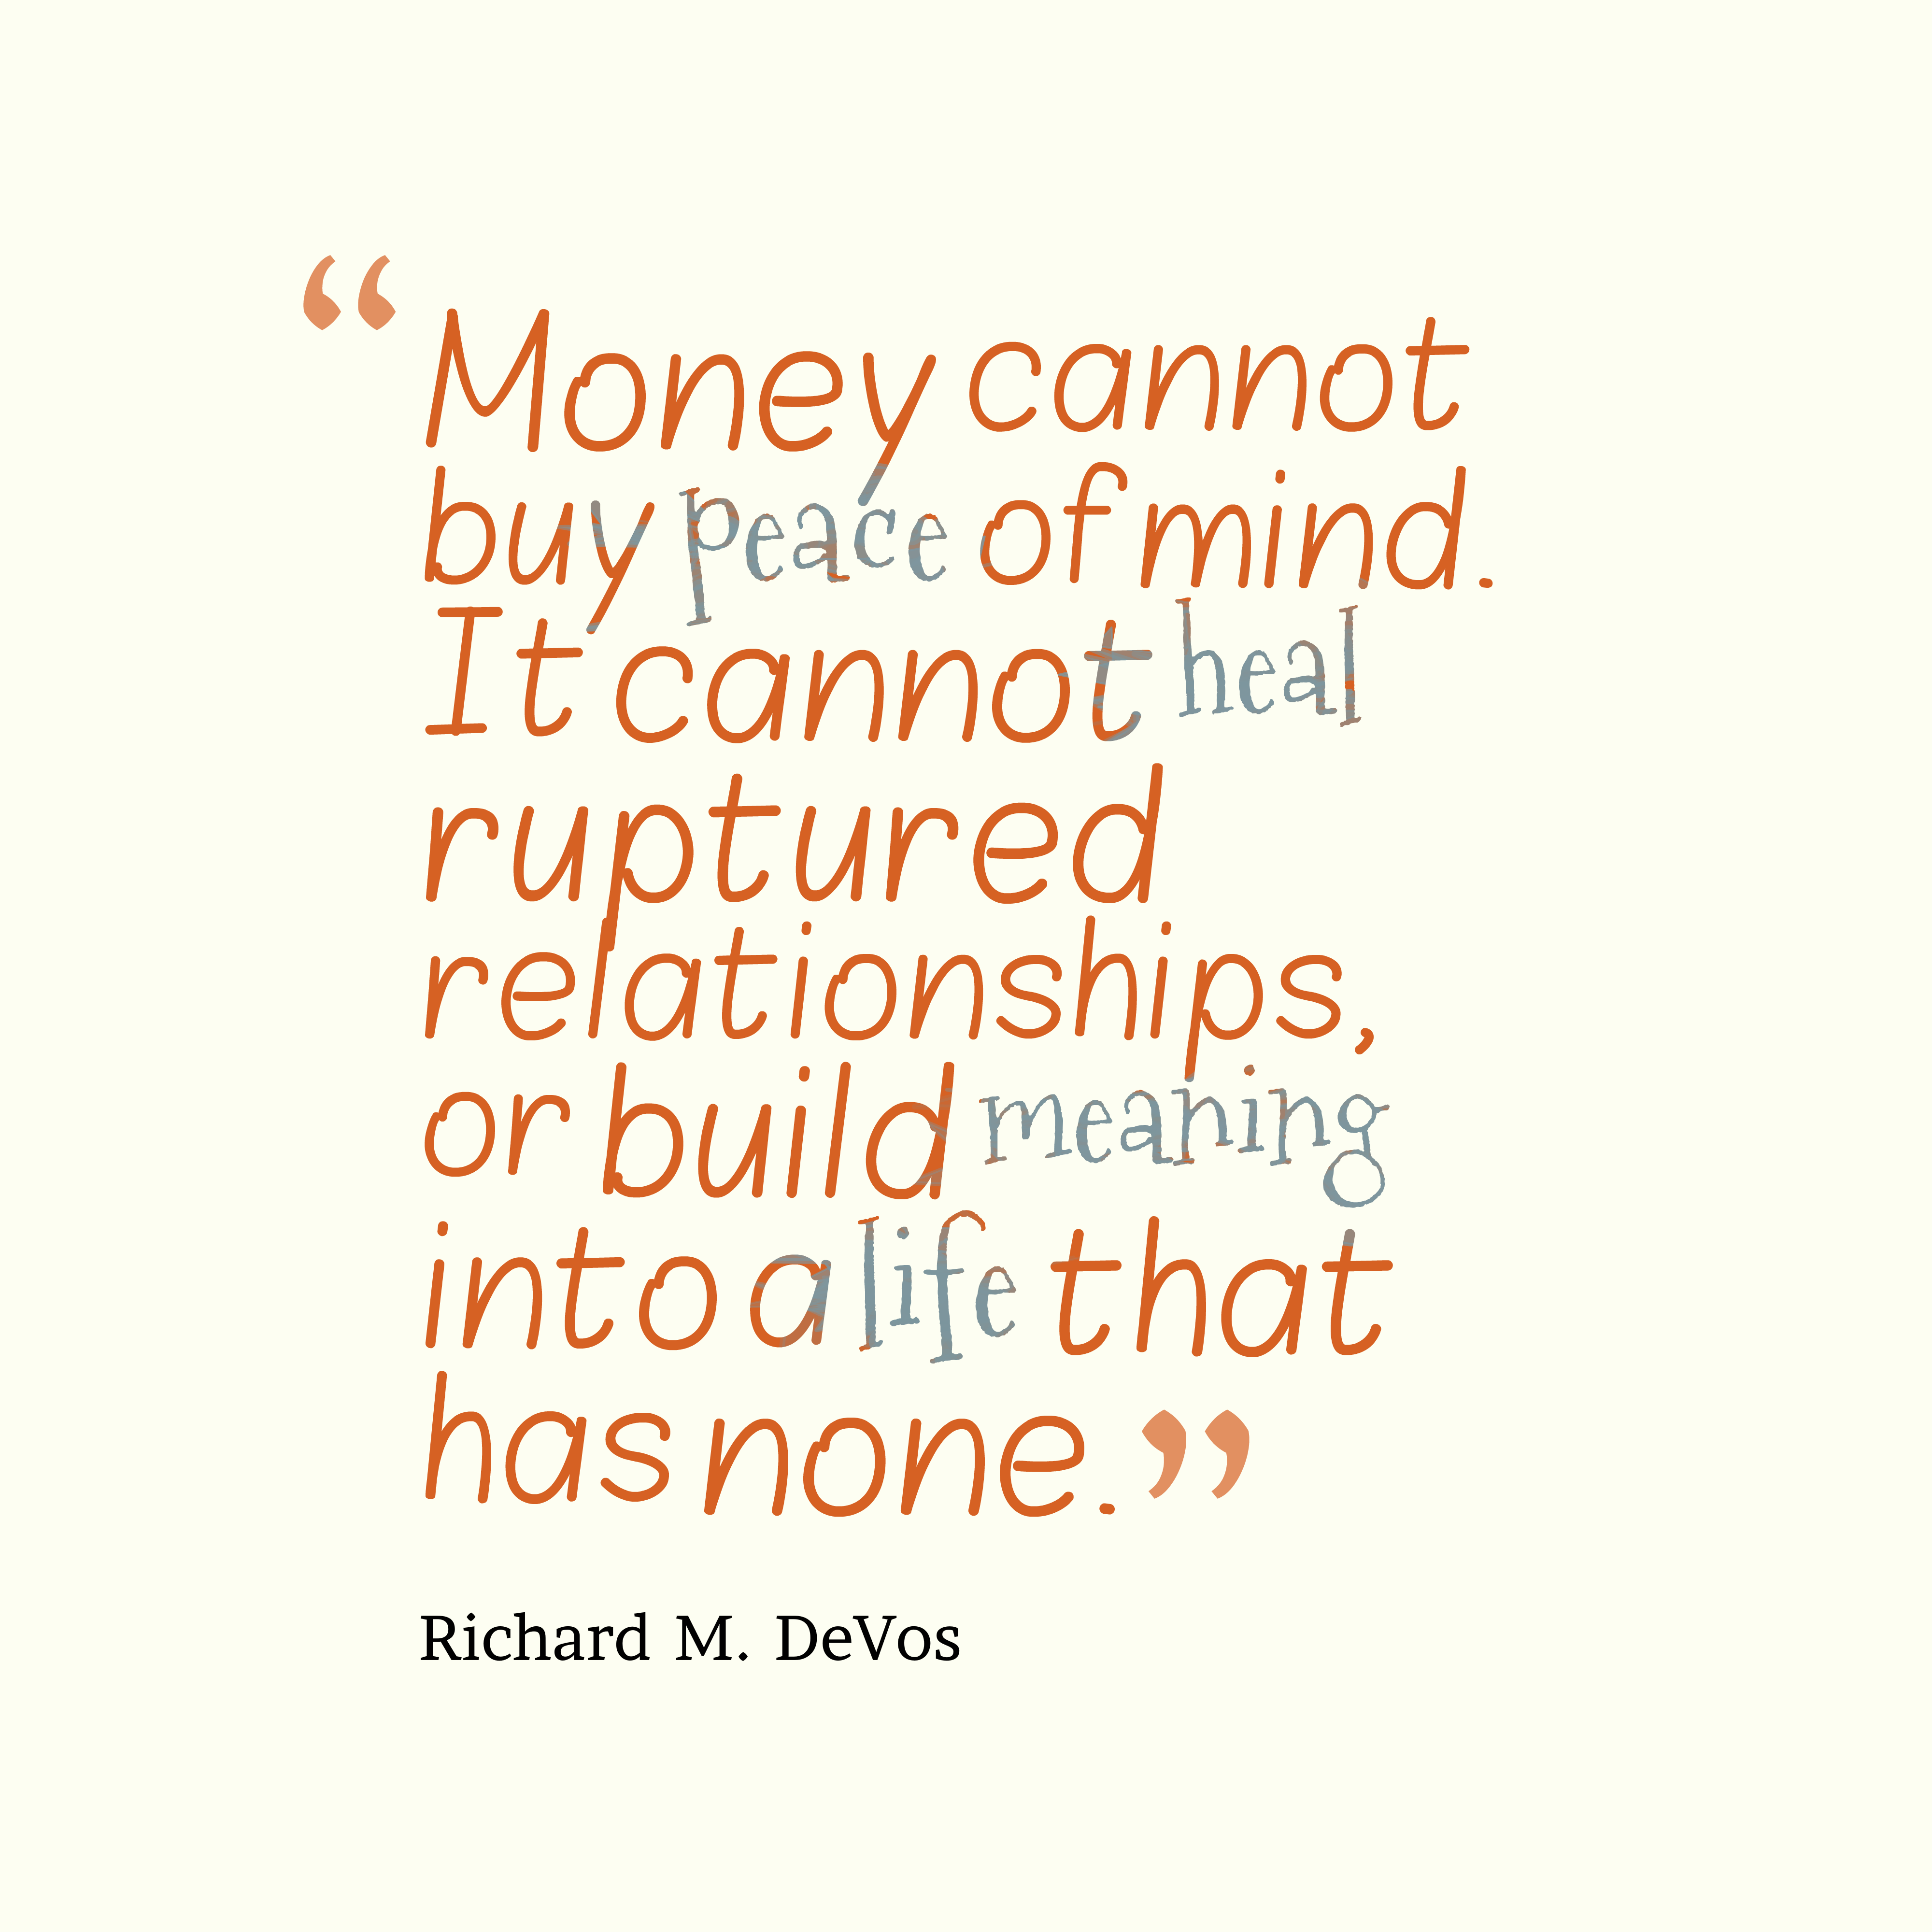 Love Quotes Wall Stickers Picture Richard M Devos Quote About Money Quotescover Com